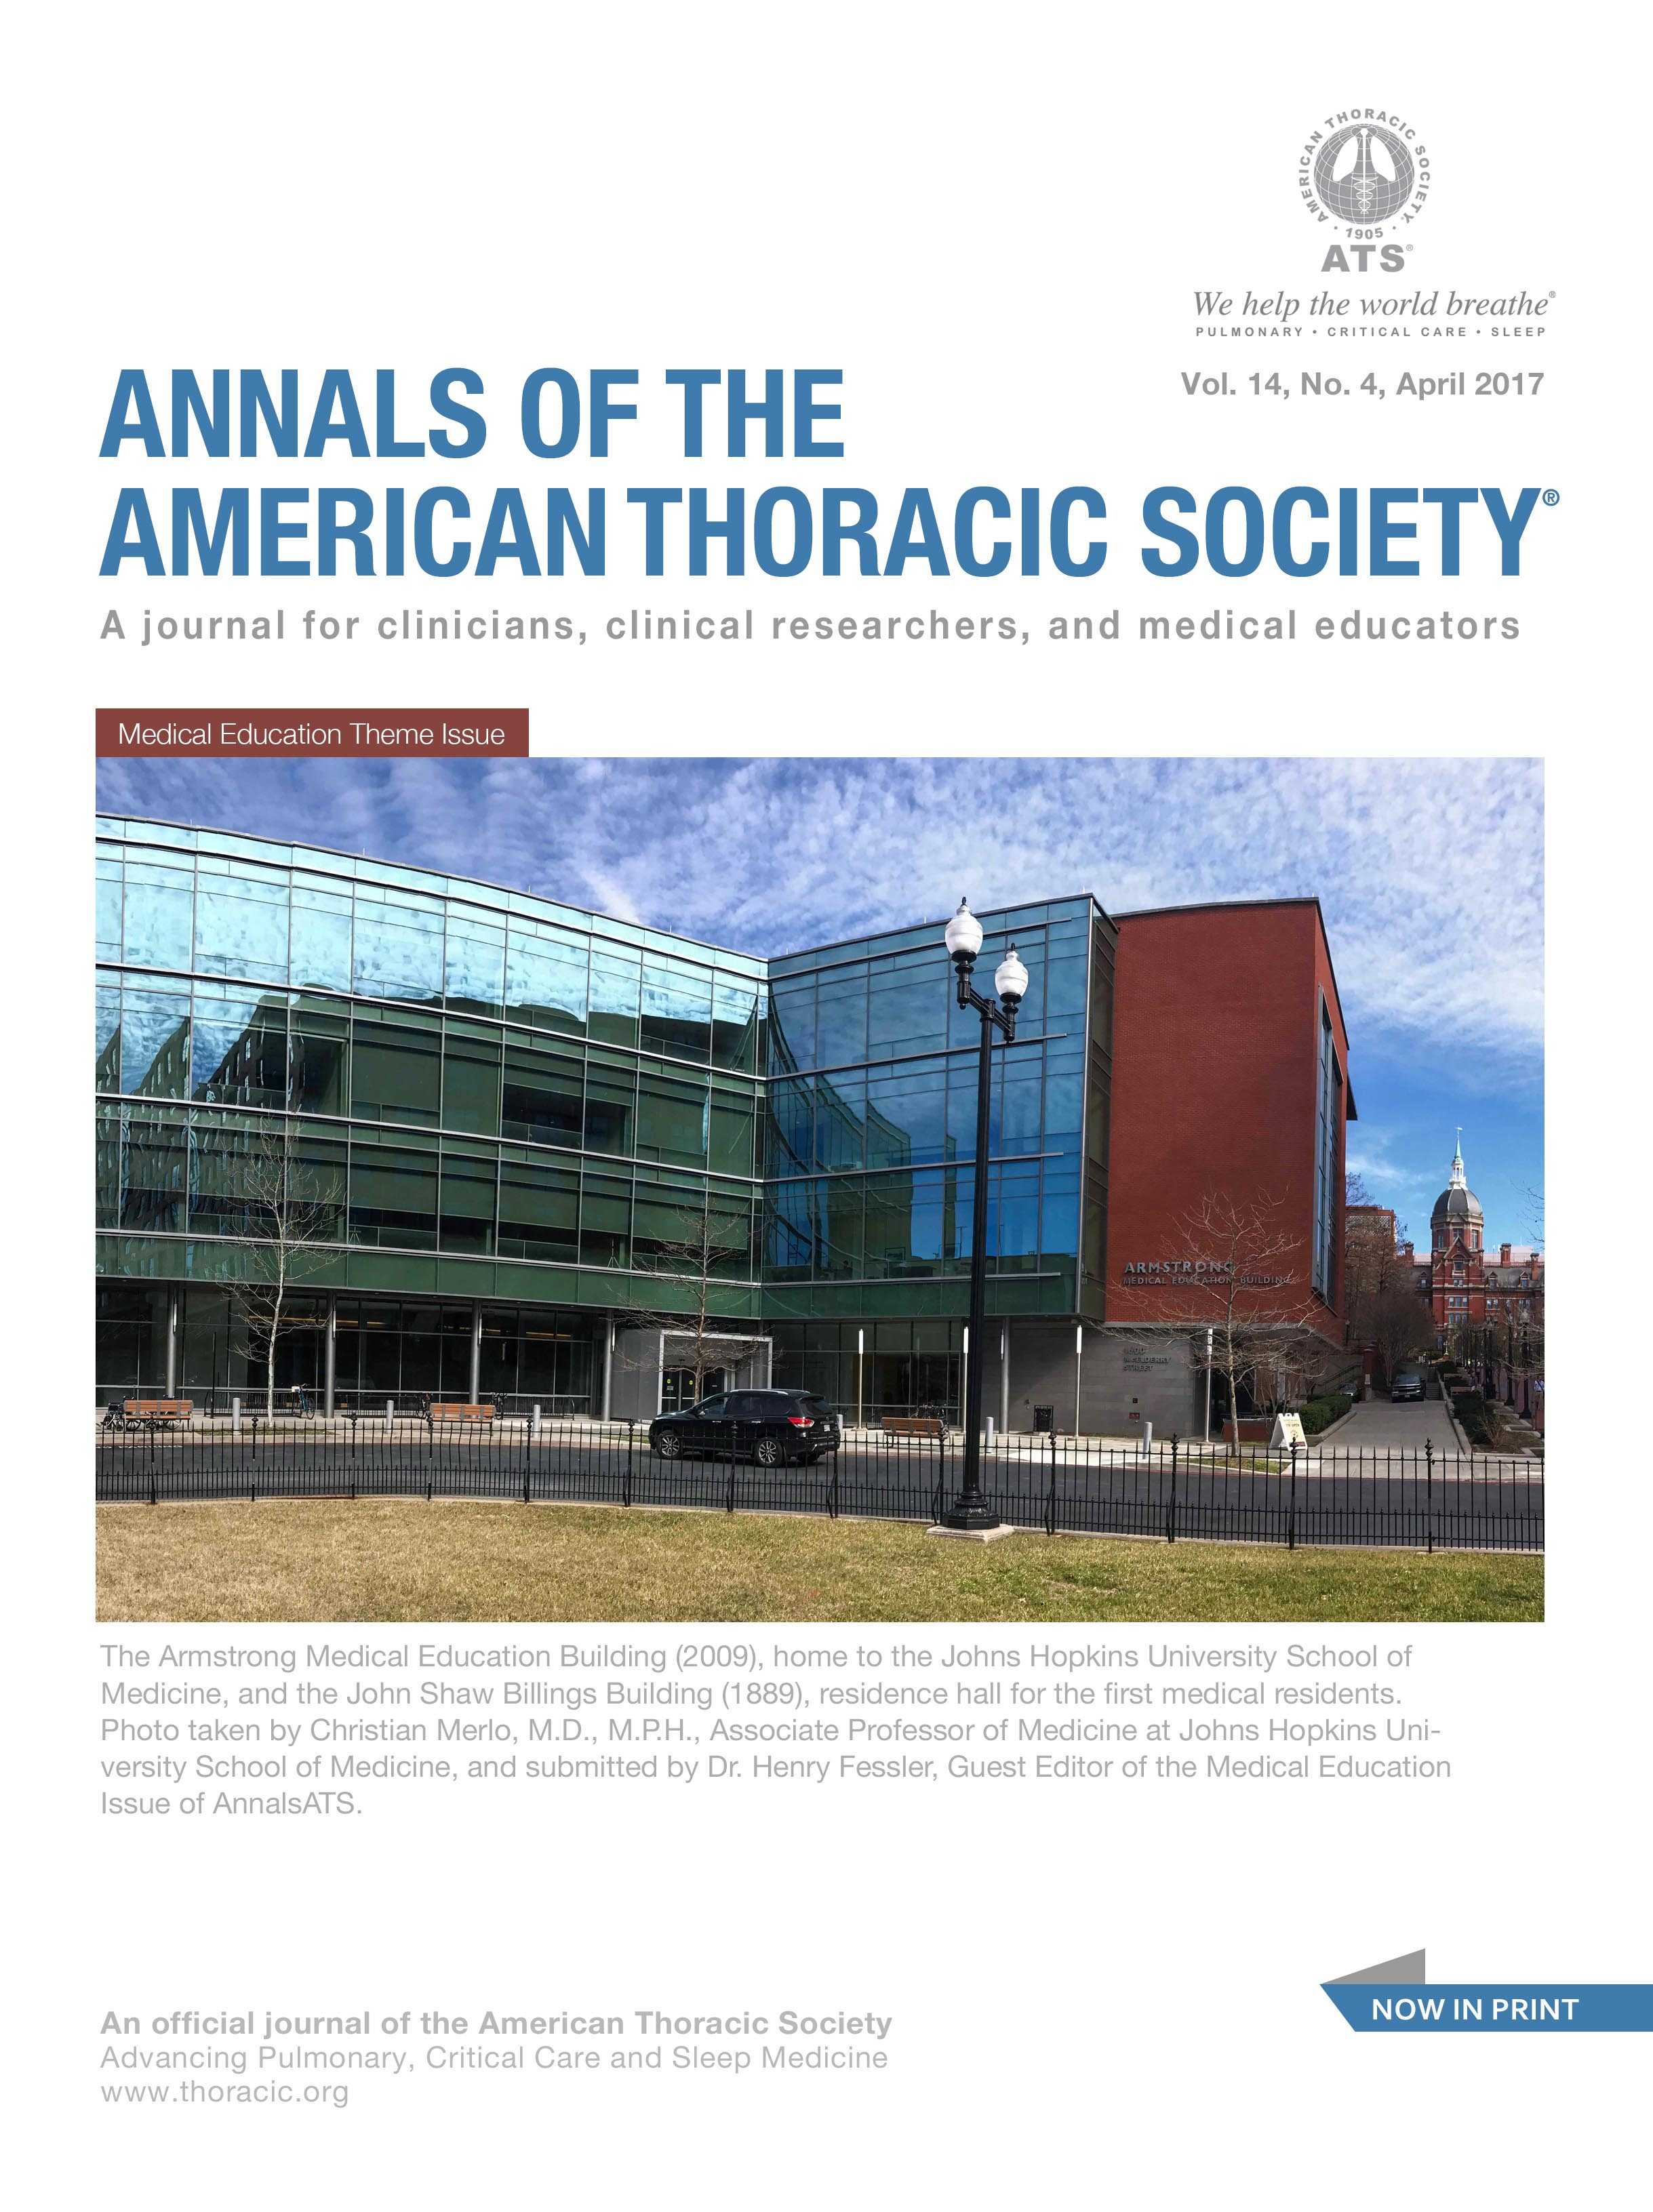 Annals of the American Thoracic Society - Wikipedia